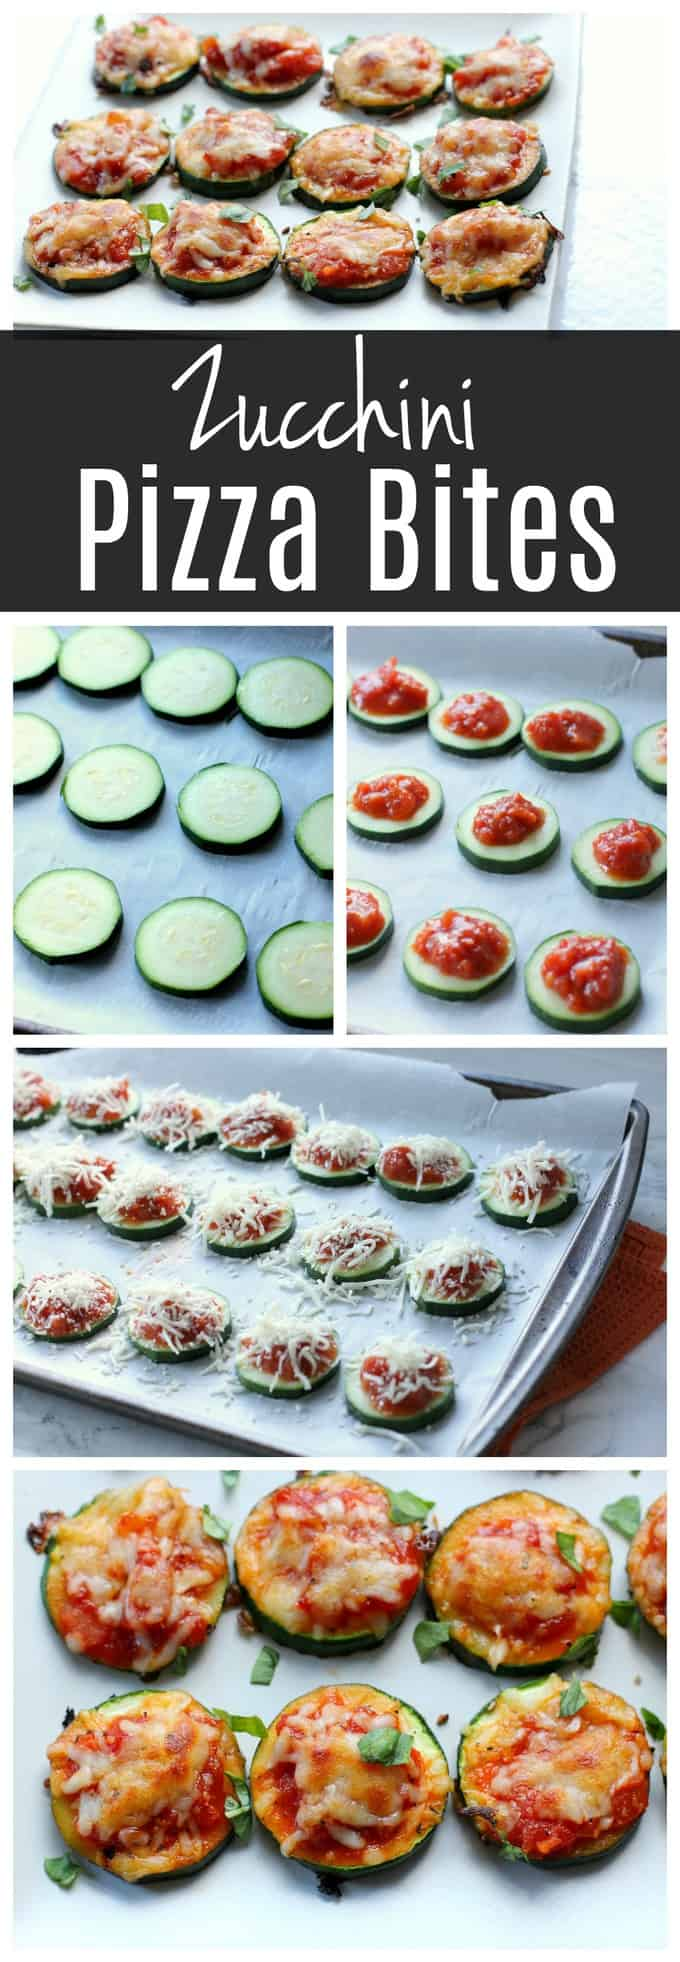 These zucchini pizza bites a healthy appetizer or dinner idea!